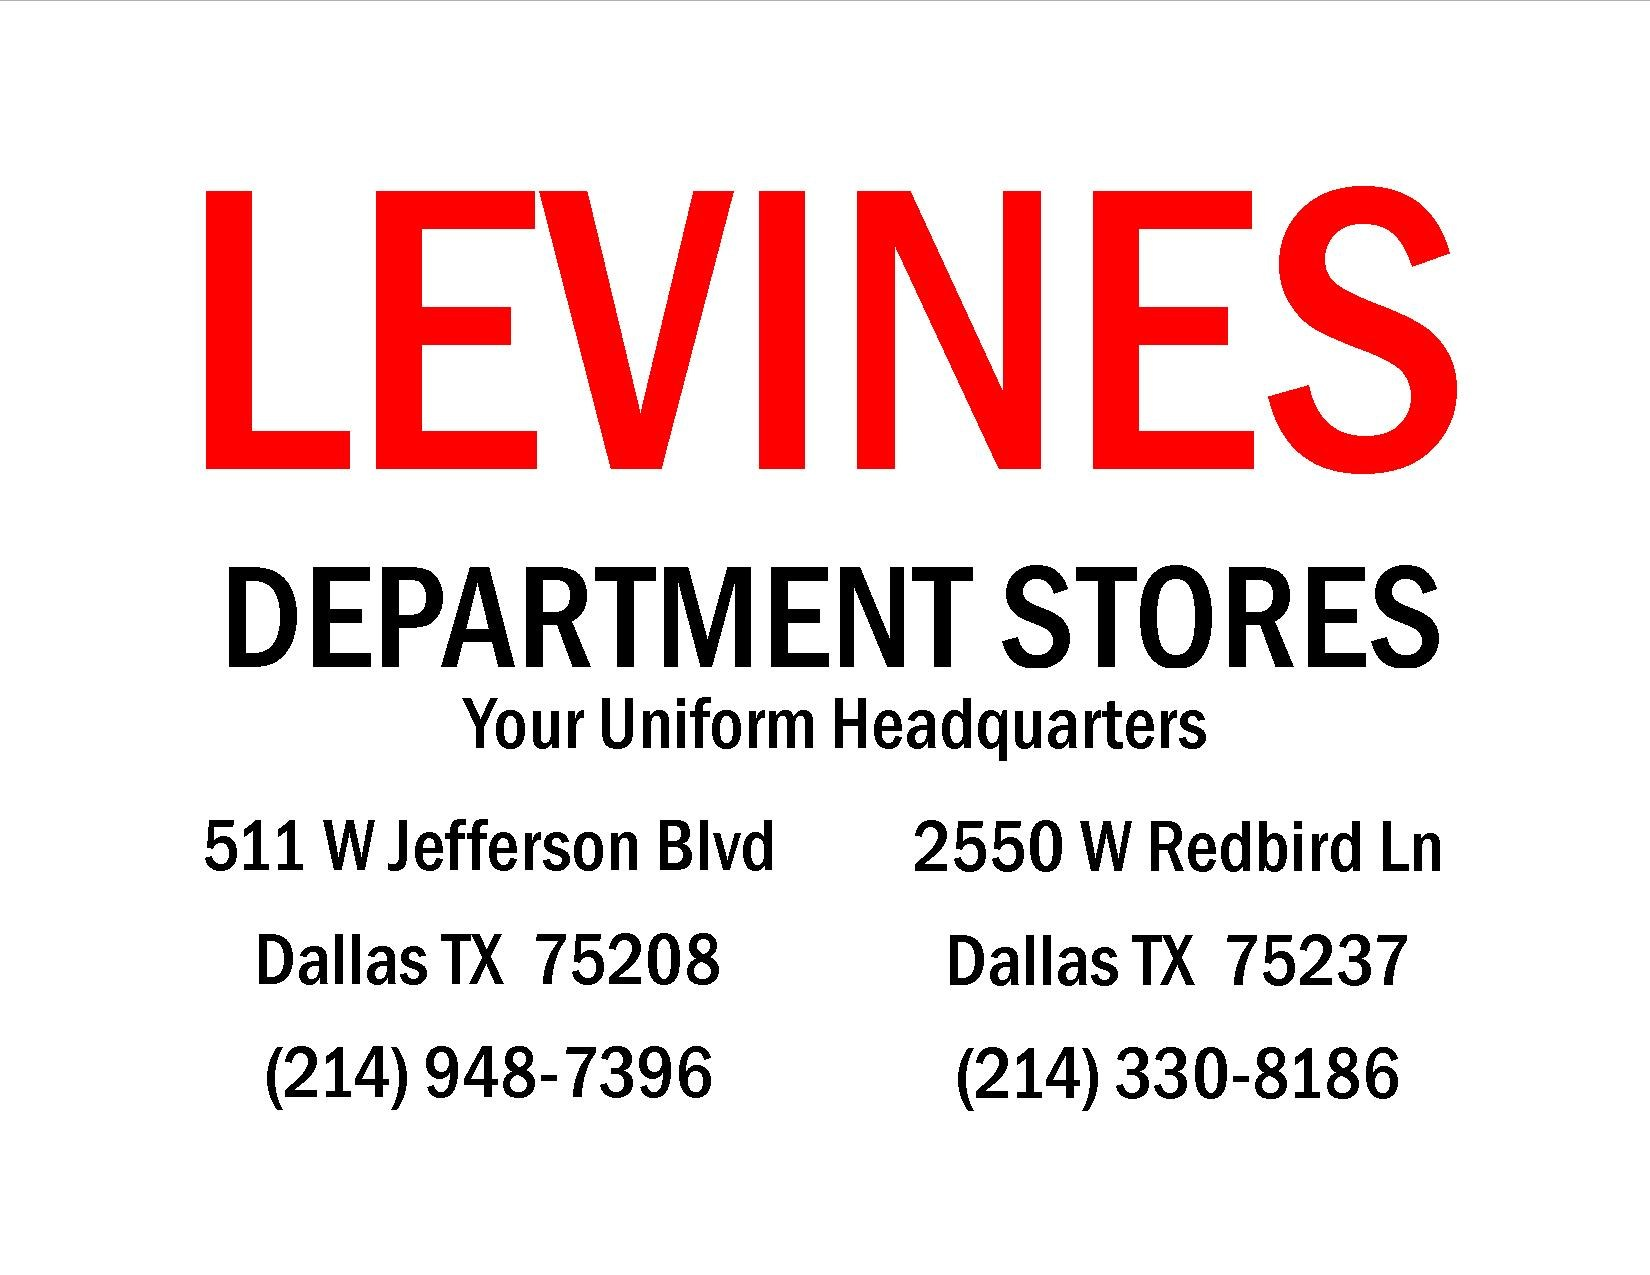 Levines Department Stores